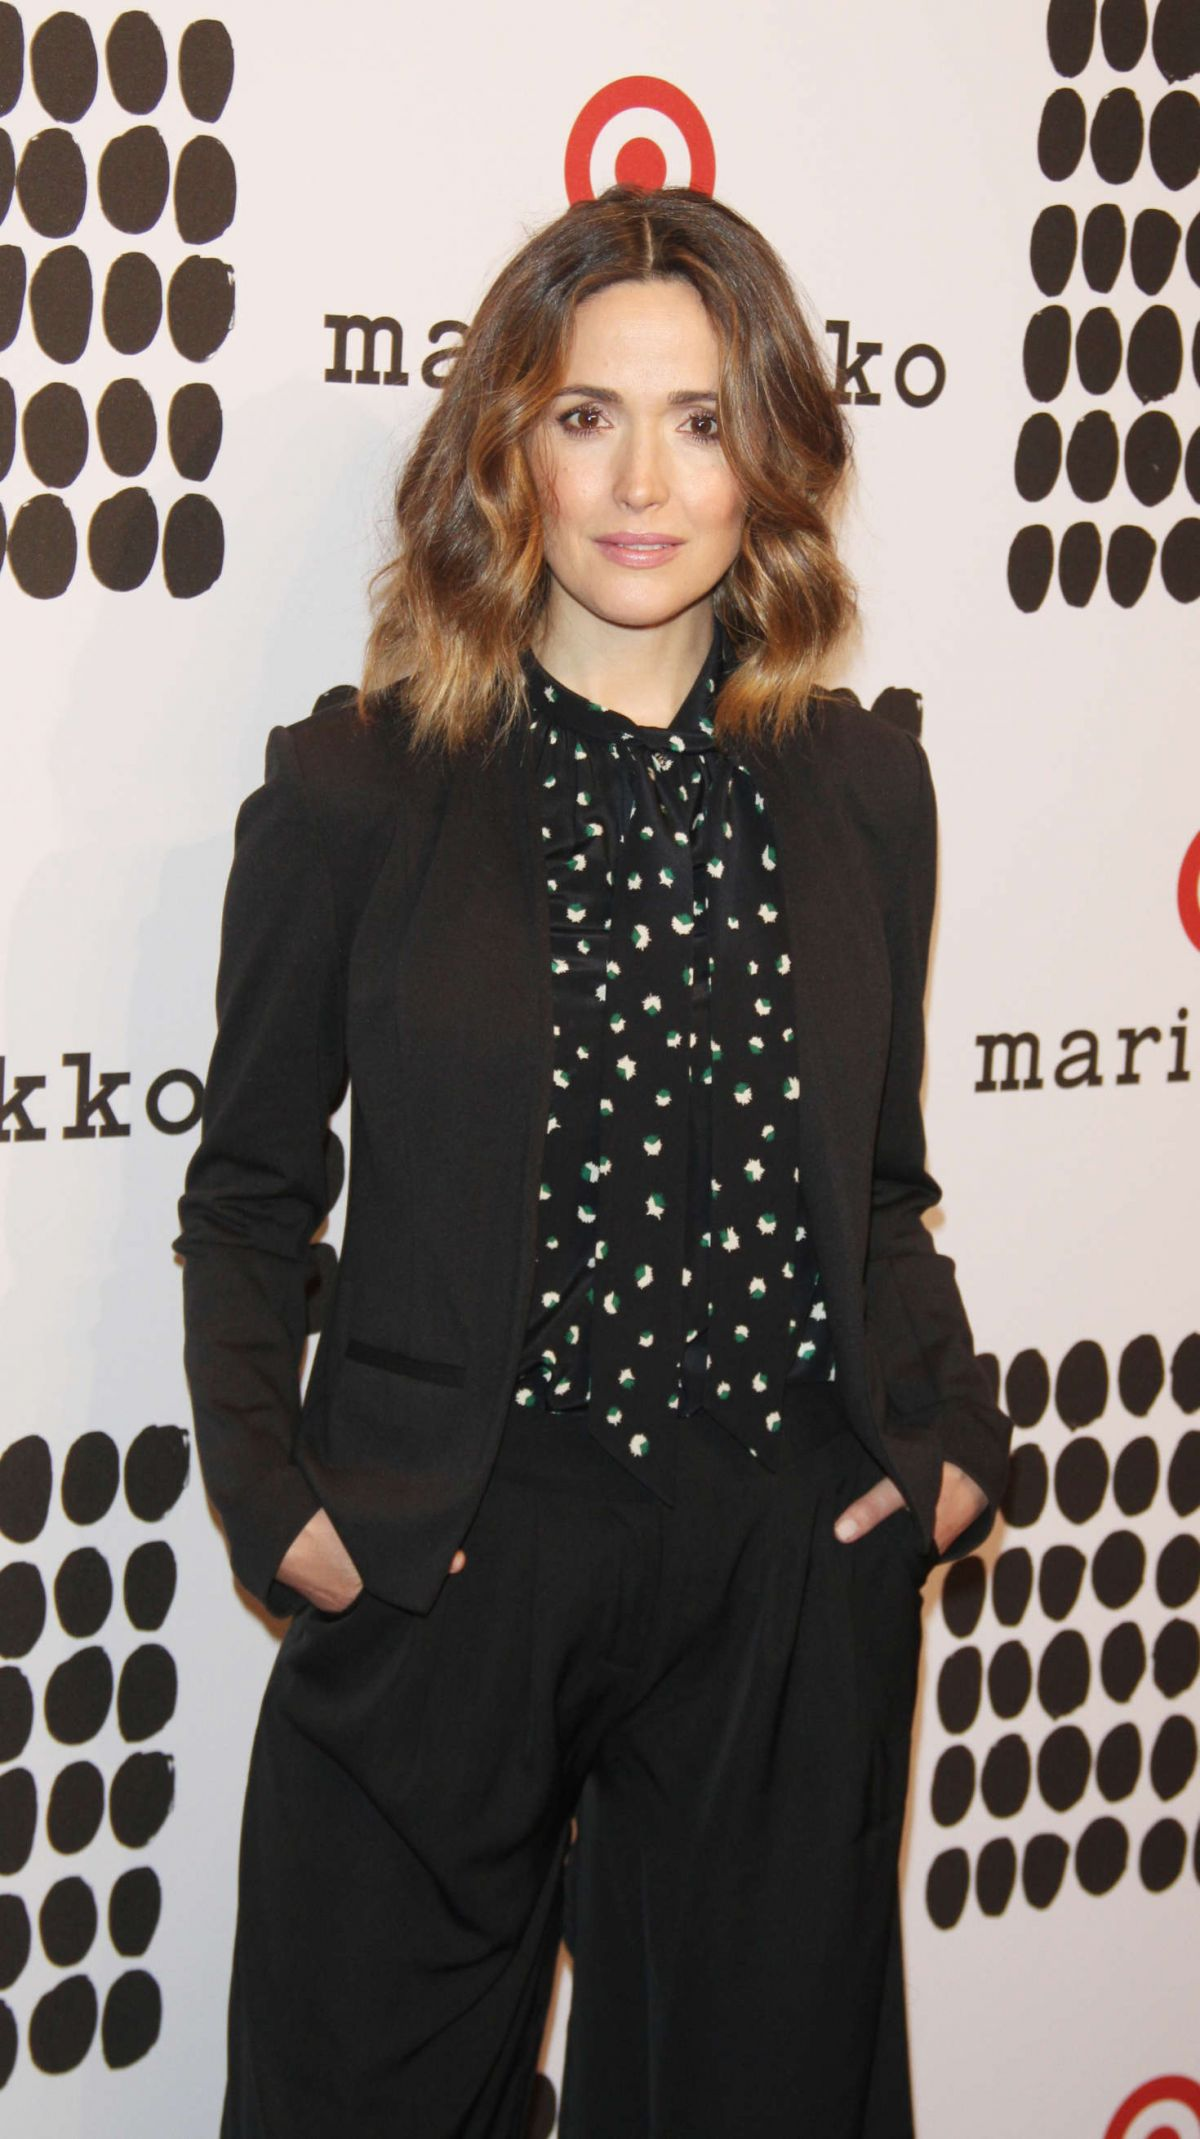 ROSE BYRNE at Marimekko for Target Launch Celebration in New York 04/07/2016